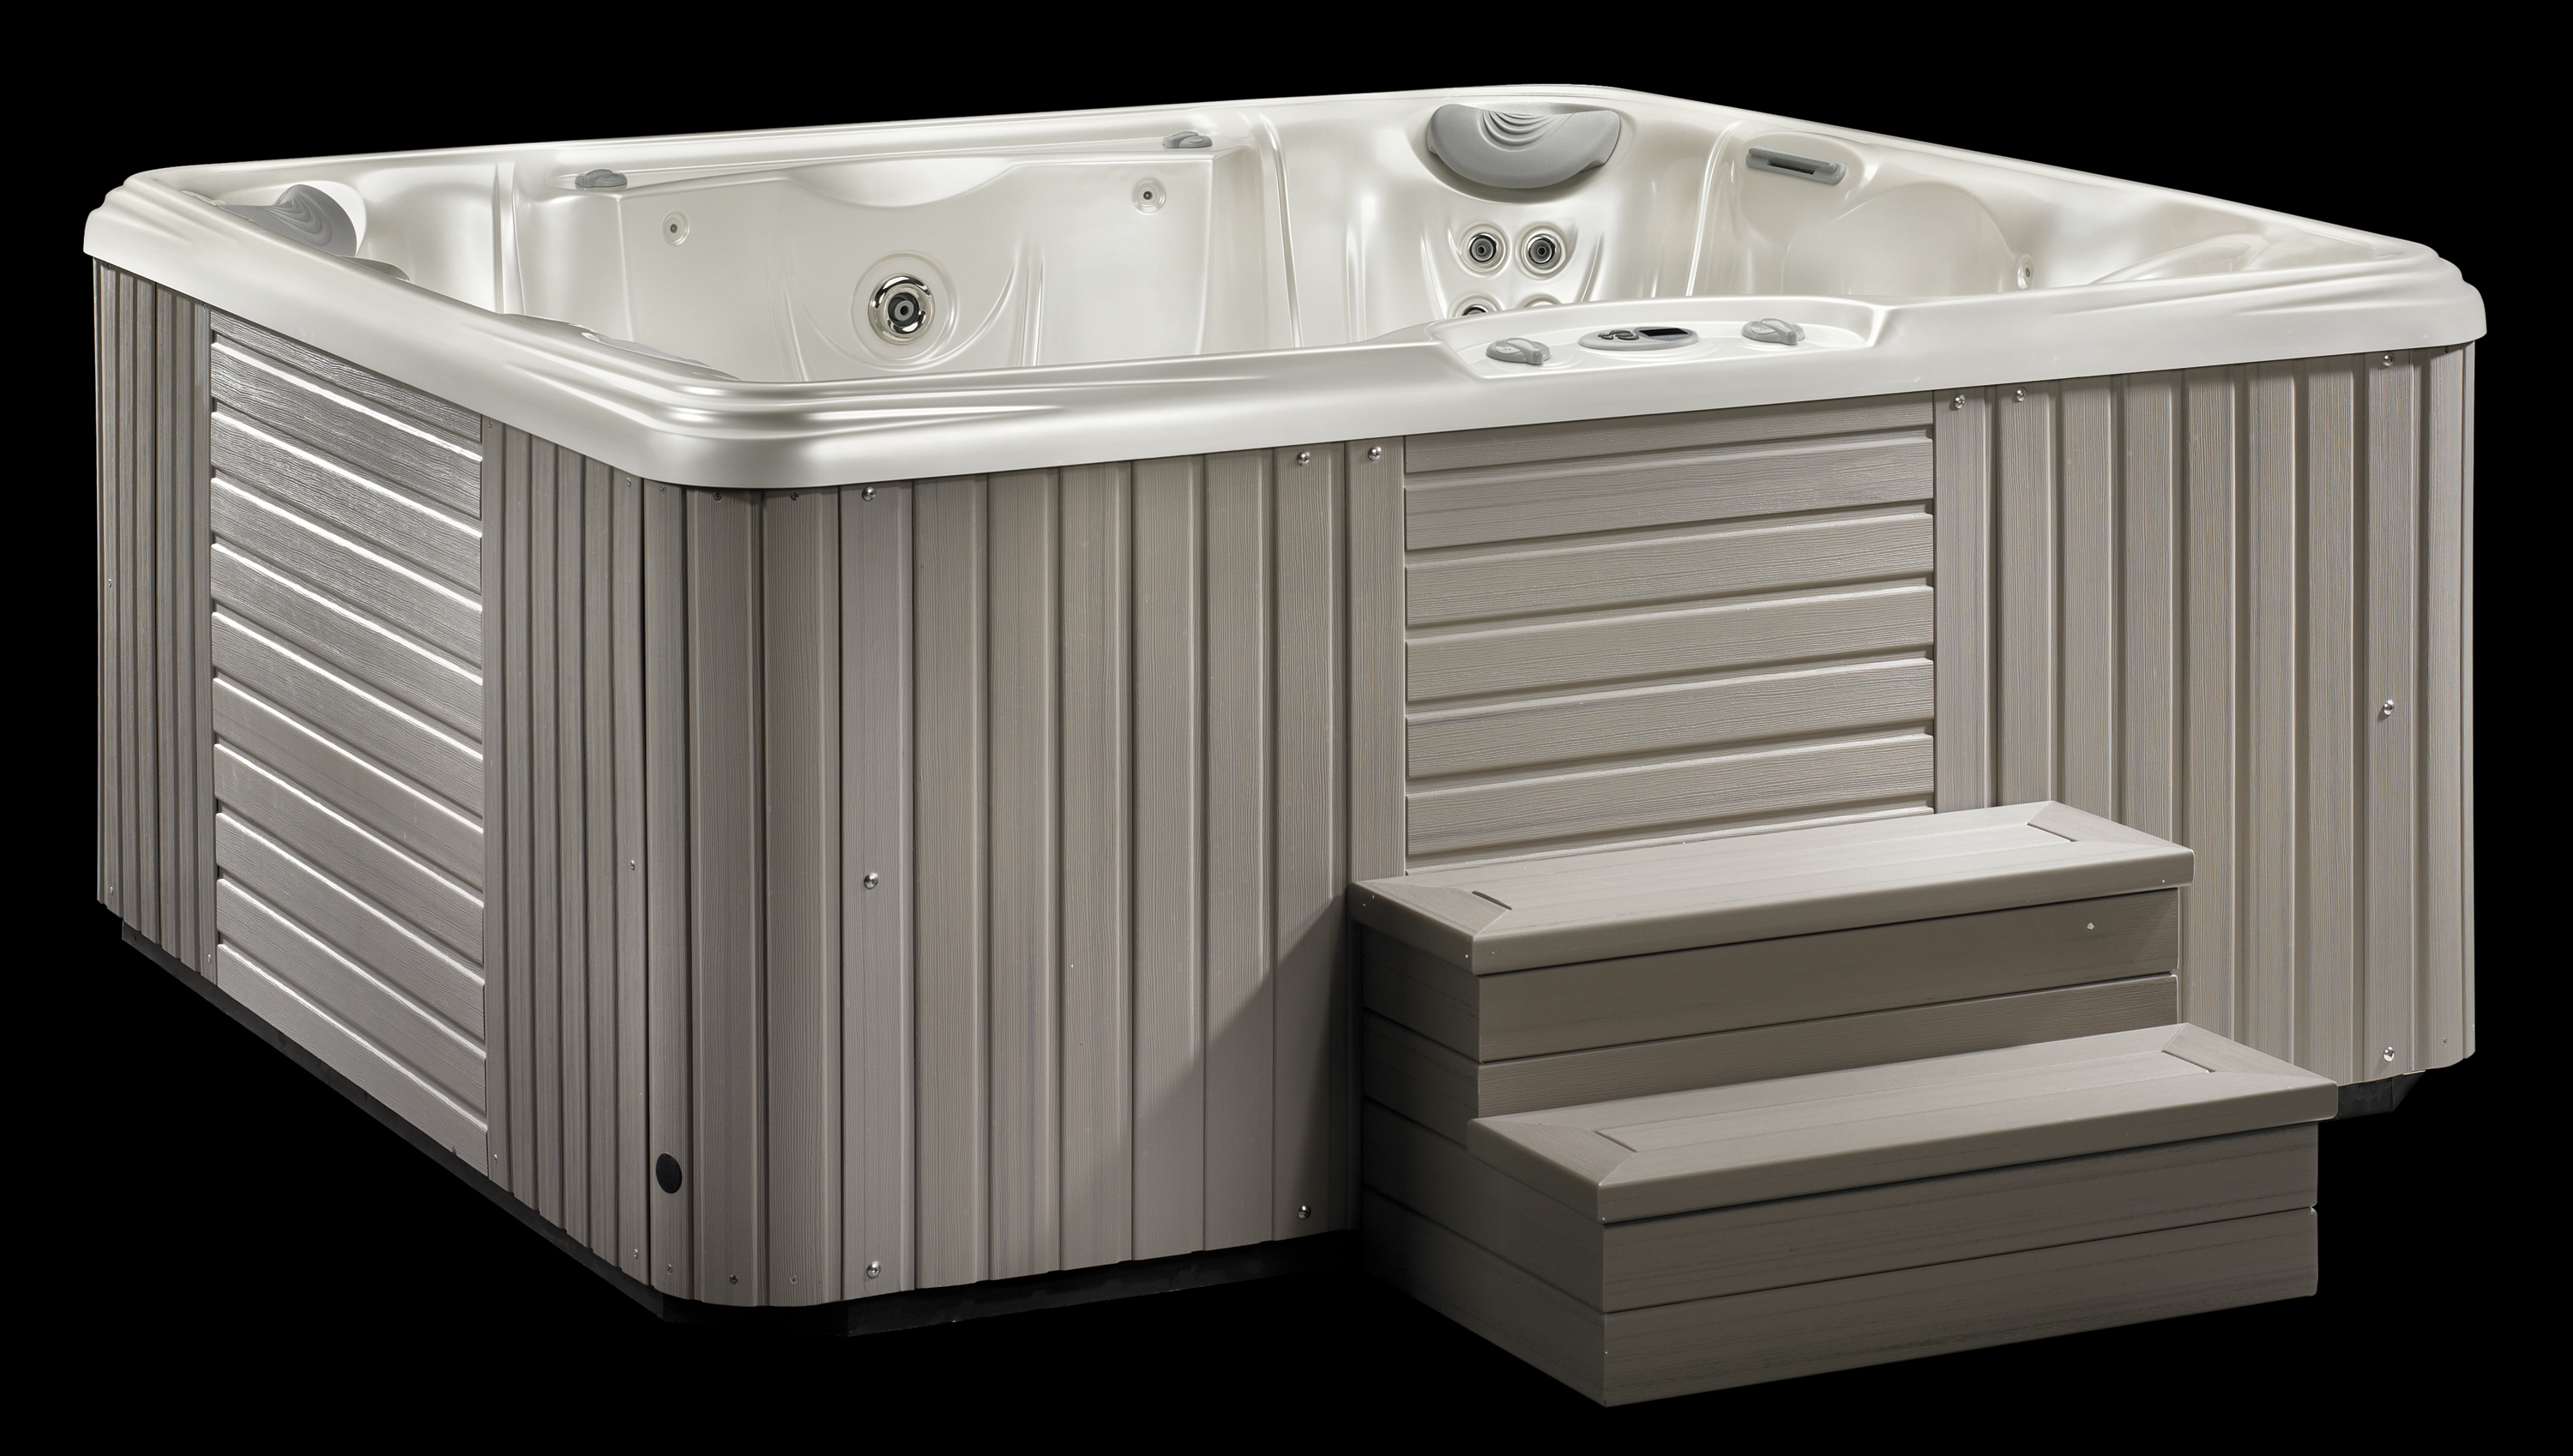 installation pacific ash side marquis amesbury of a my need spa do soft base resort ma for i hot you tub what type rim